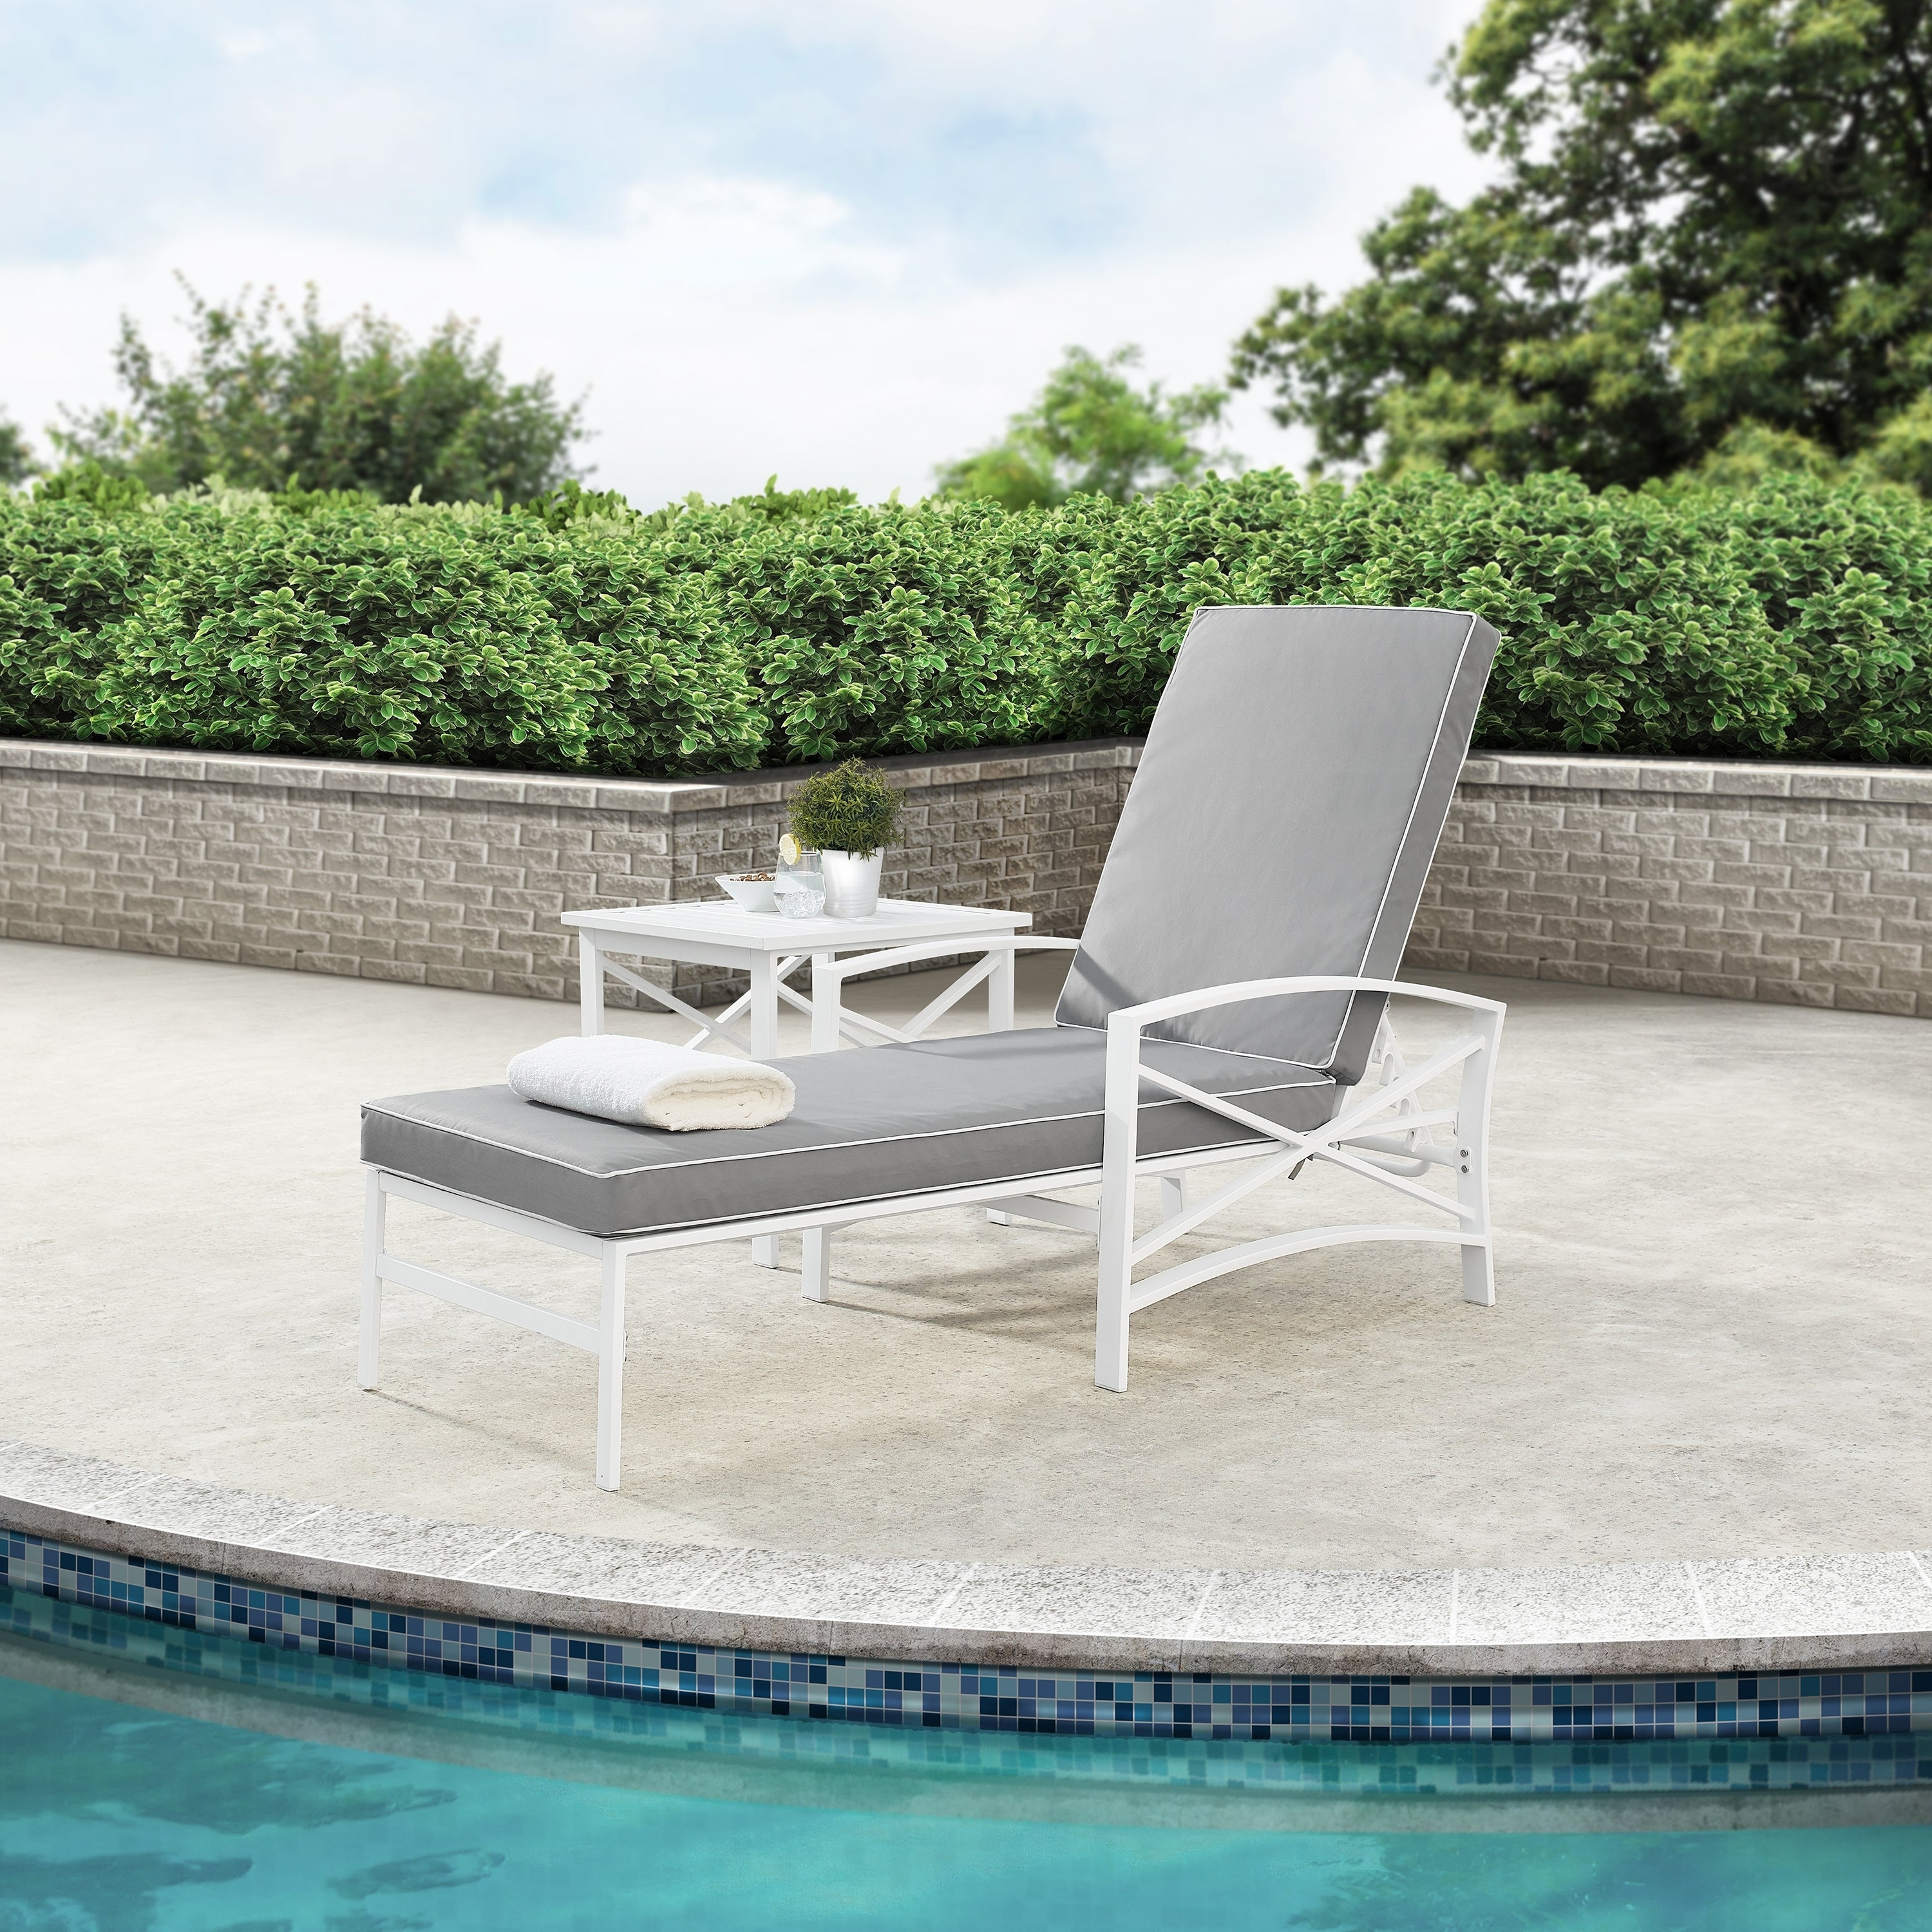 Most Recently Released Havenside Home Davis Chaise Lounge Chair In White With Grey Cushions With Lounge Chairs In White With Grey Cushions (View 6 of 25)